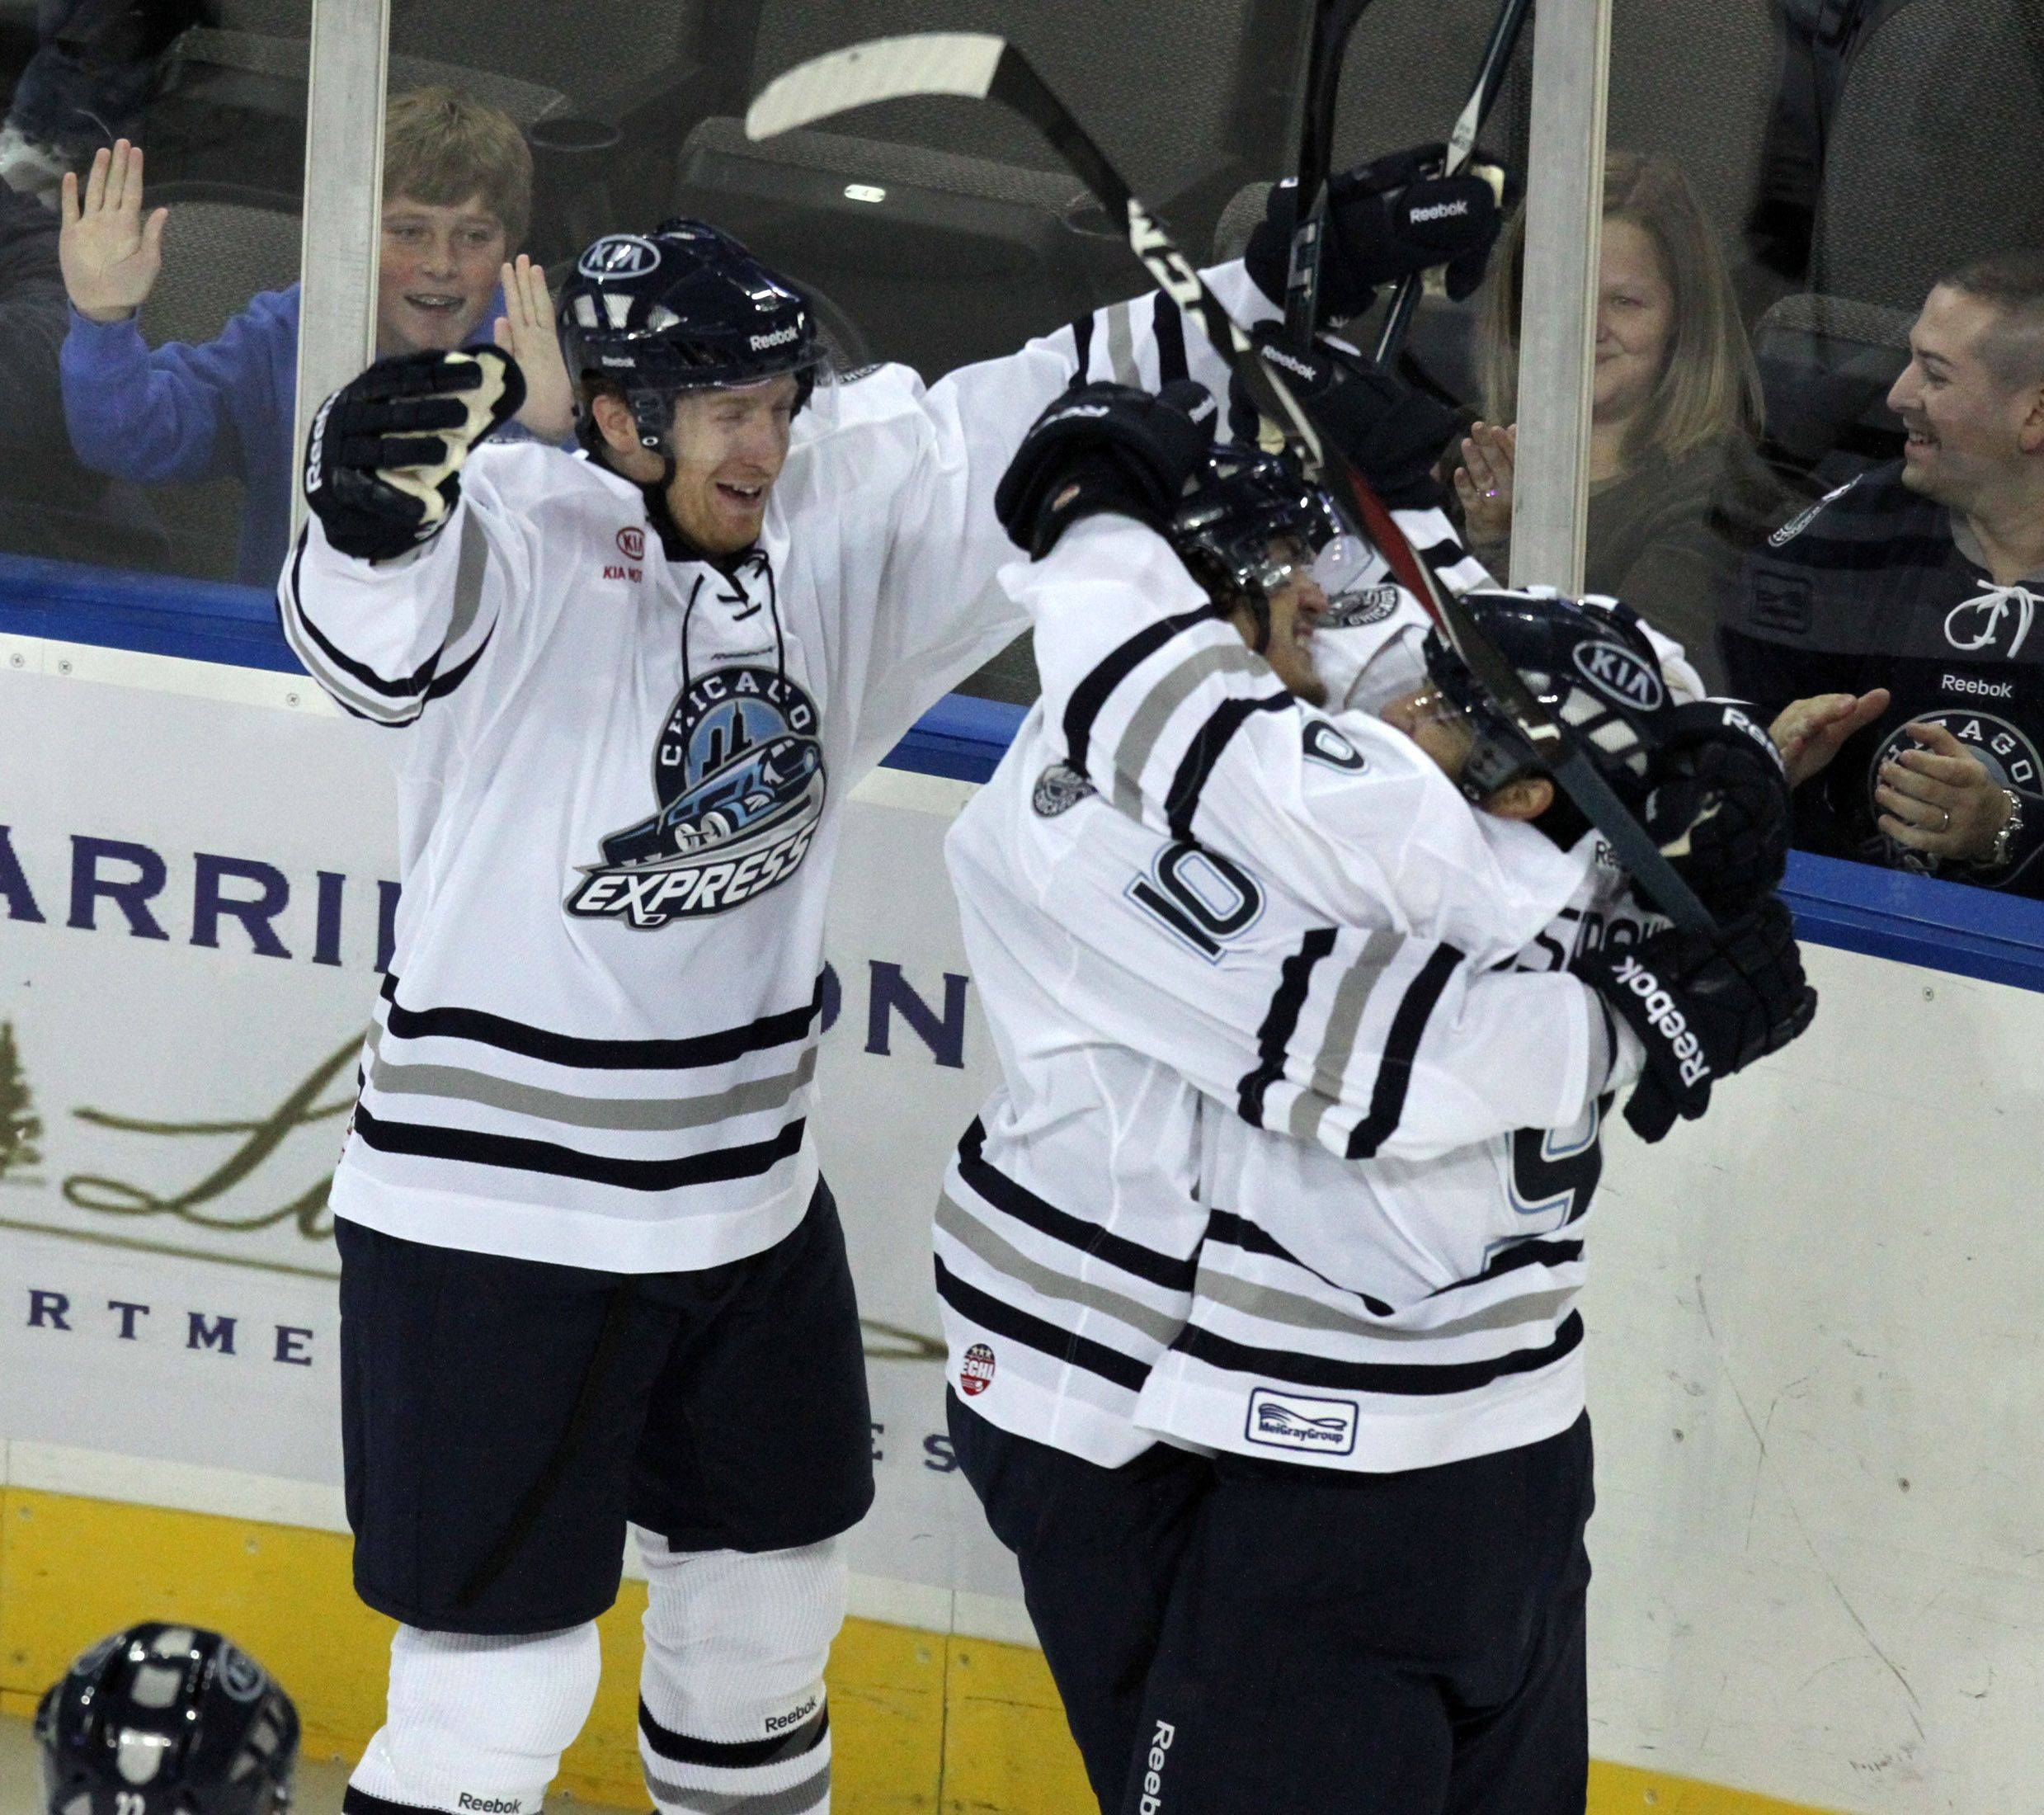 Chicago Express forward Kyle Lehman, right, celebrates a goal with teammates at 19:22 in the first period in home opener against Kalamazoo Wings at the Sears Centre in Hoffman Estates on Saturday, October 22nd.